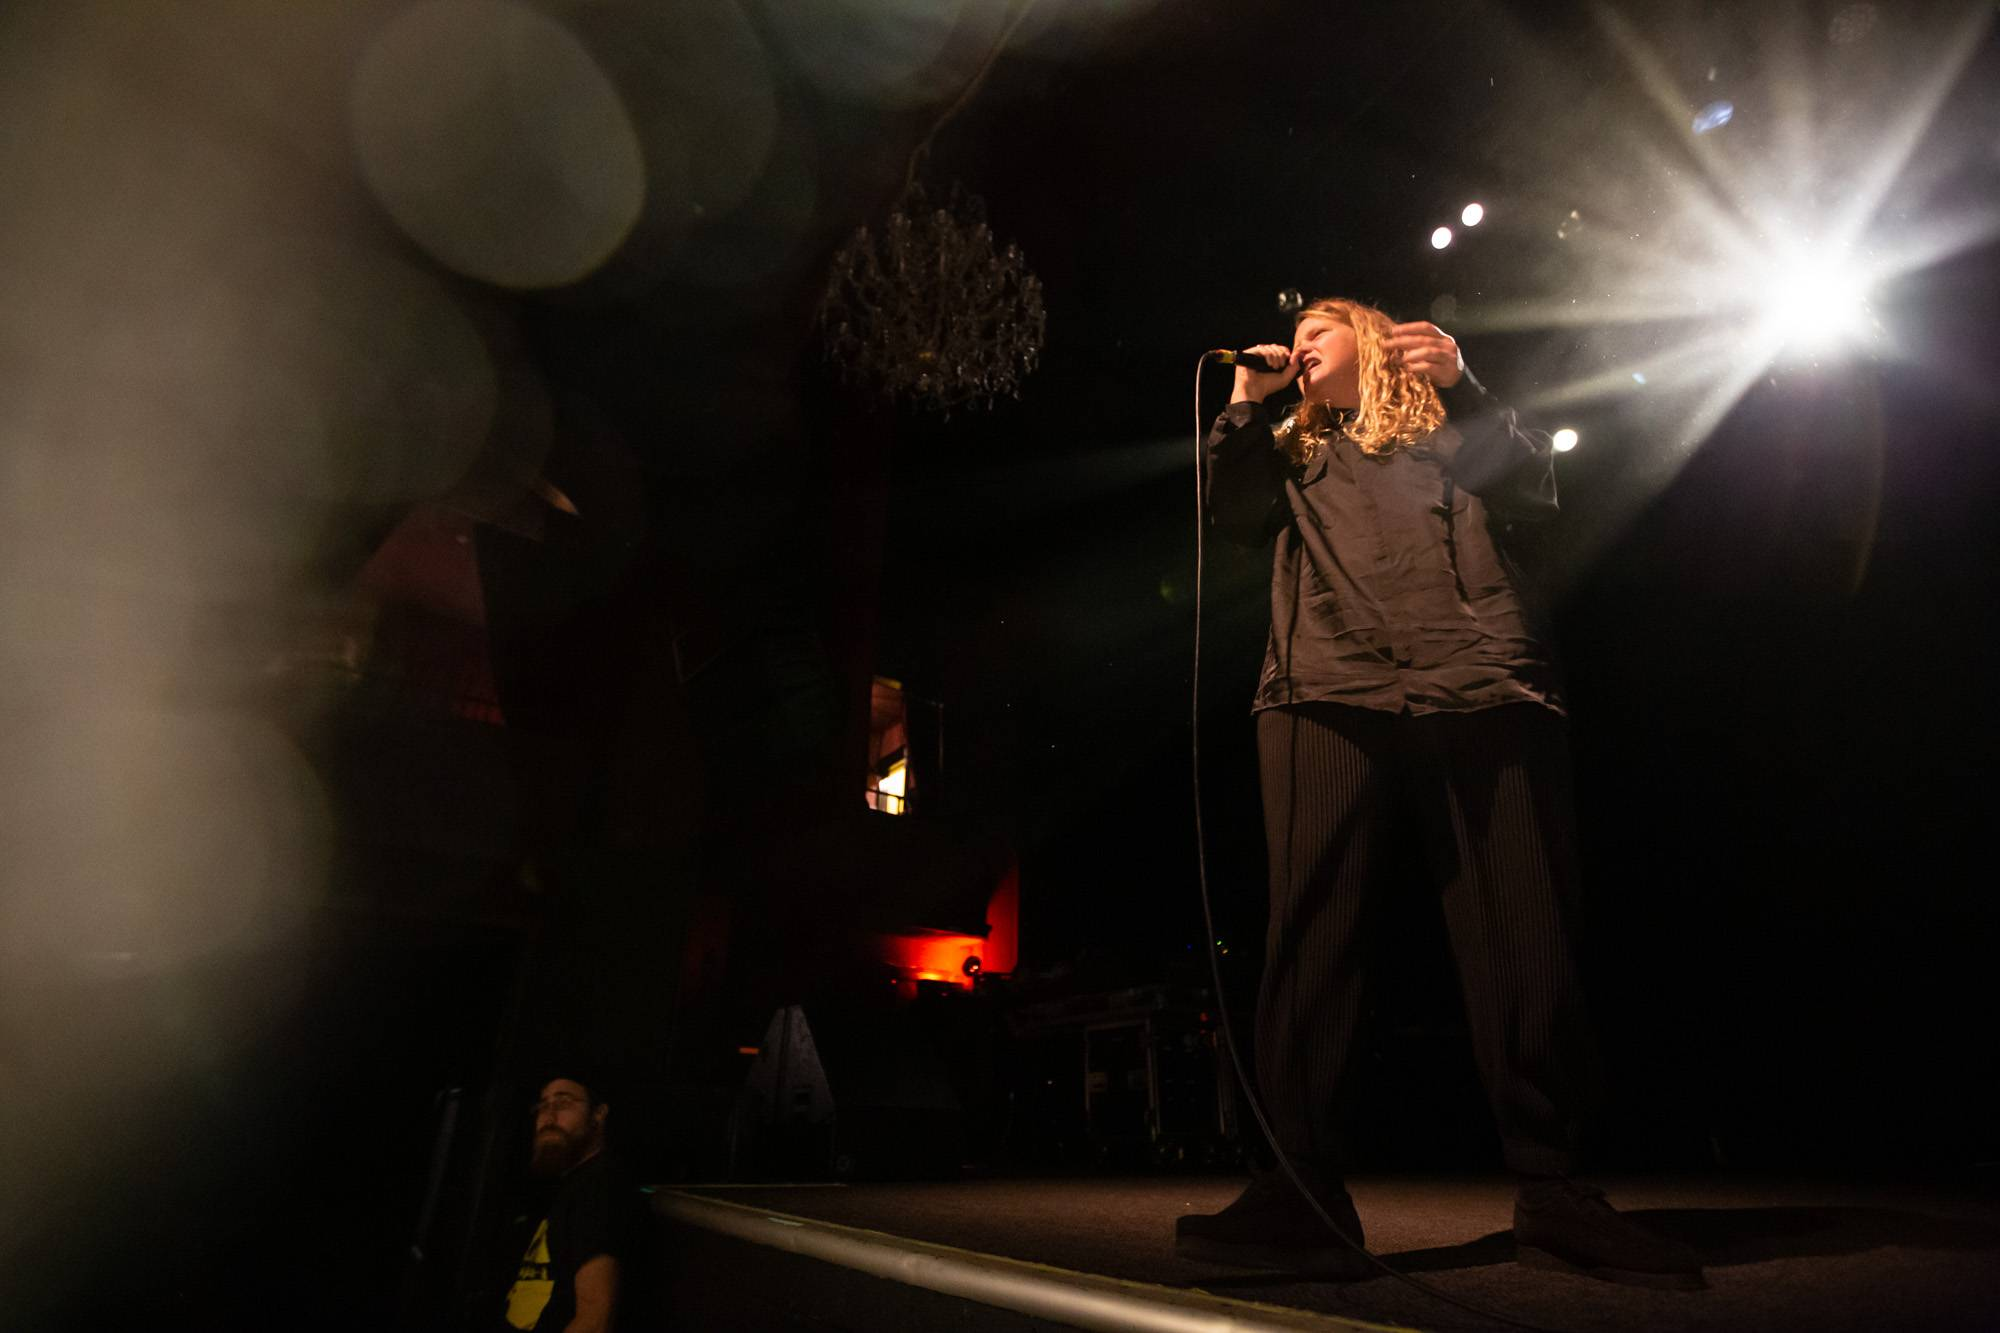 Kate Tempest at The Fillmore, San Francisco, Sep 25 2019. Kirk Chantraine photo.